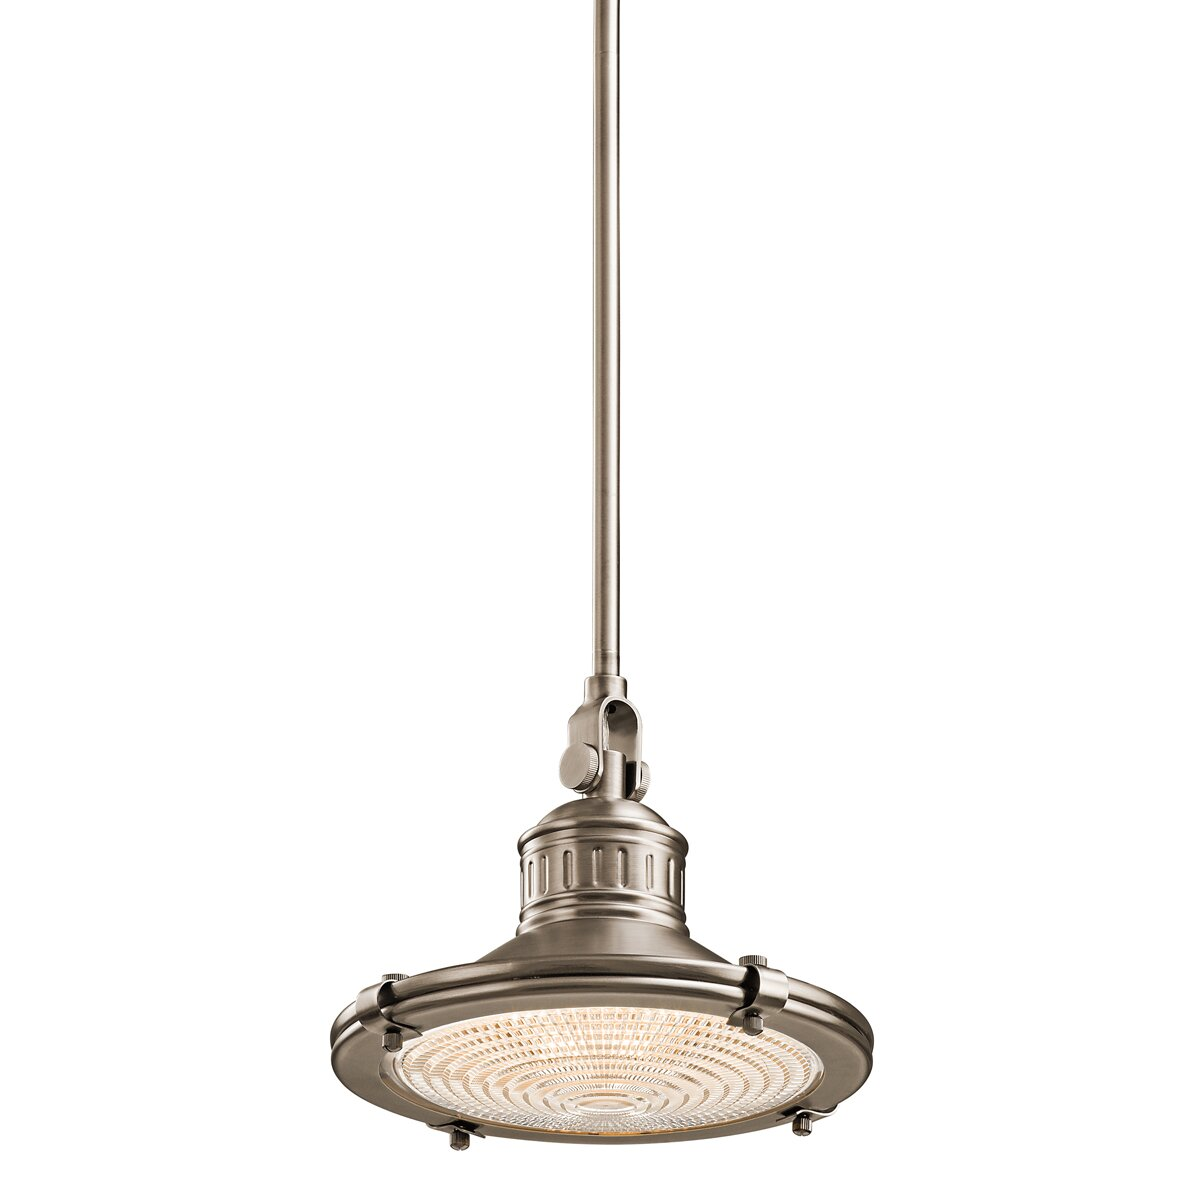 Wayfair Lights: Kichler Sayre 1 Light Pendant Light & Reviews